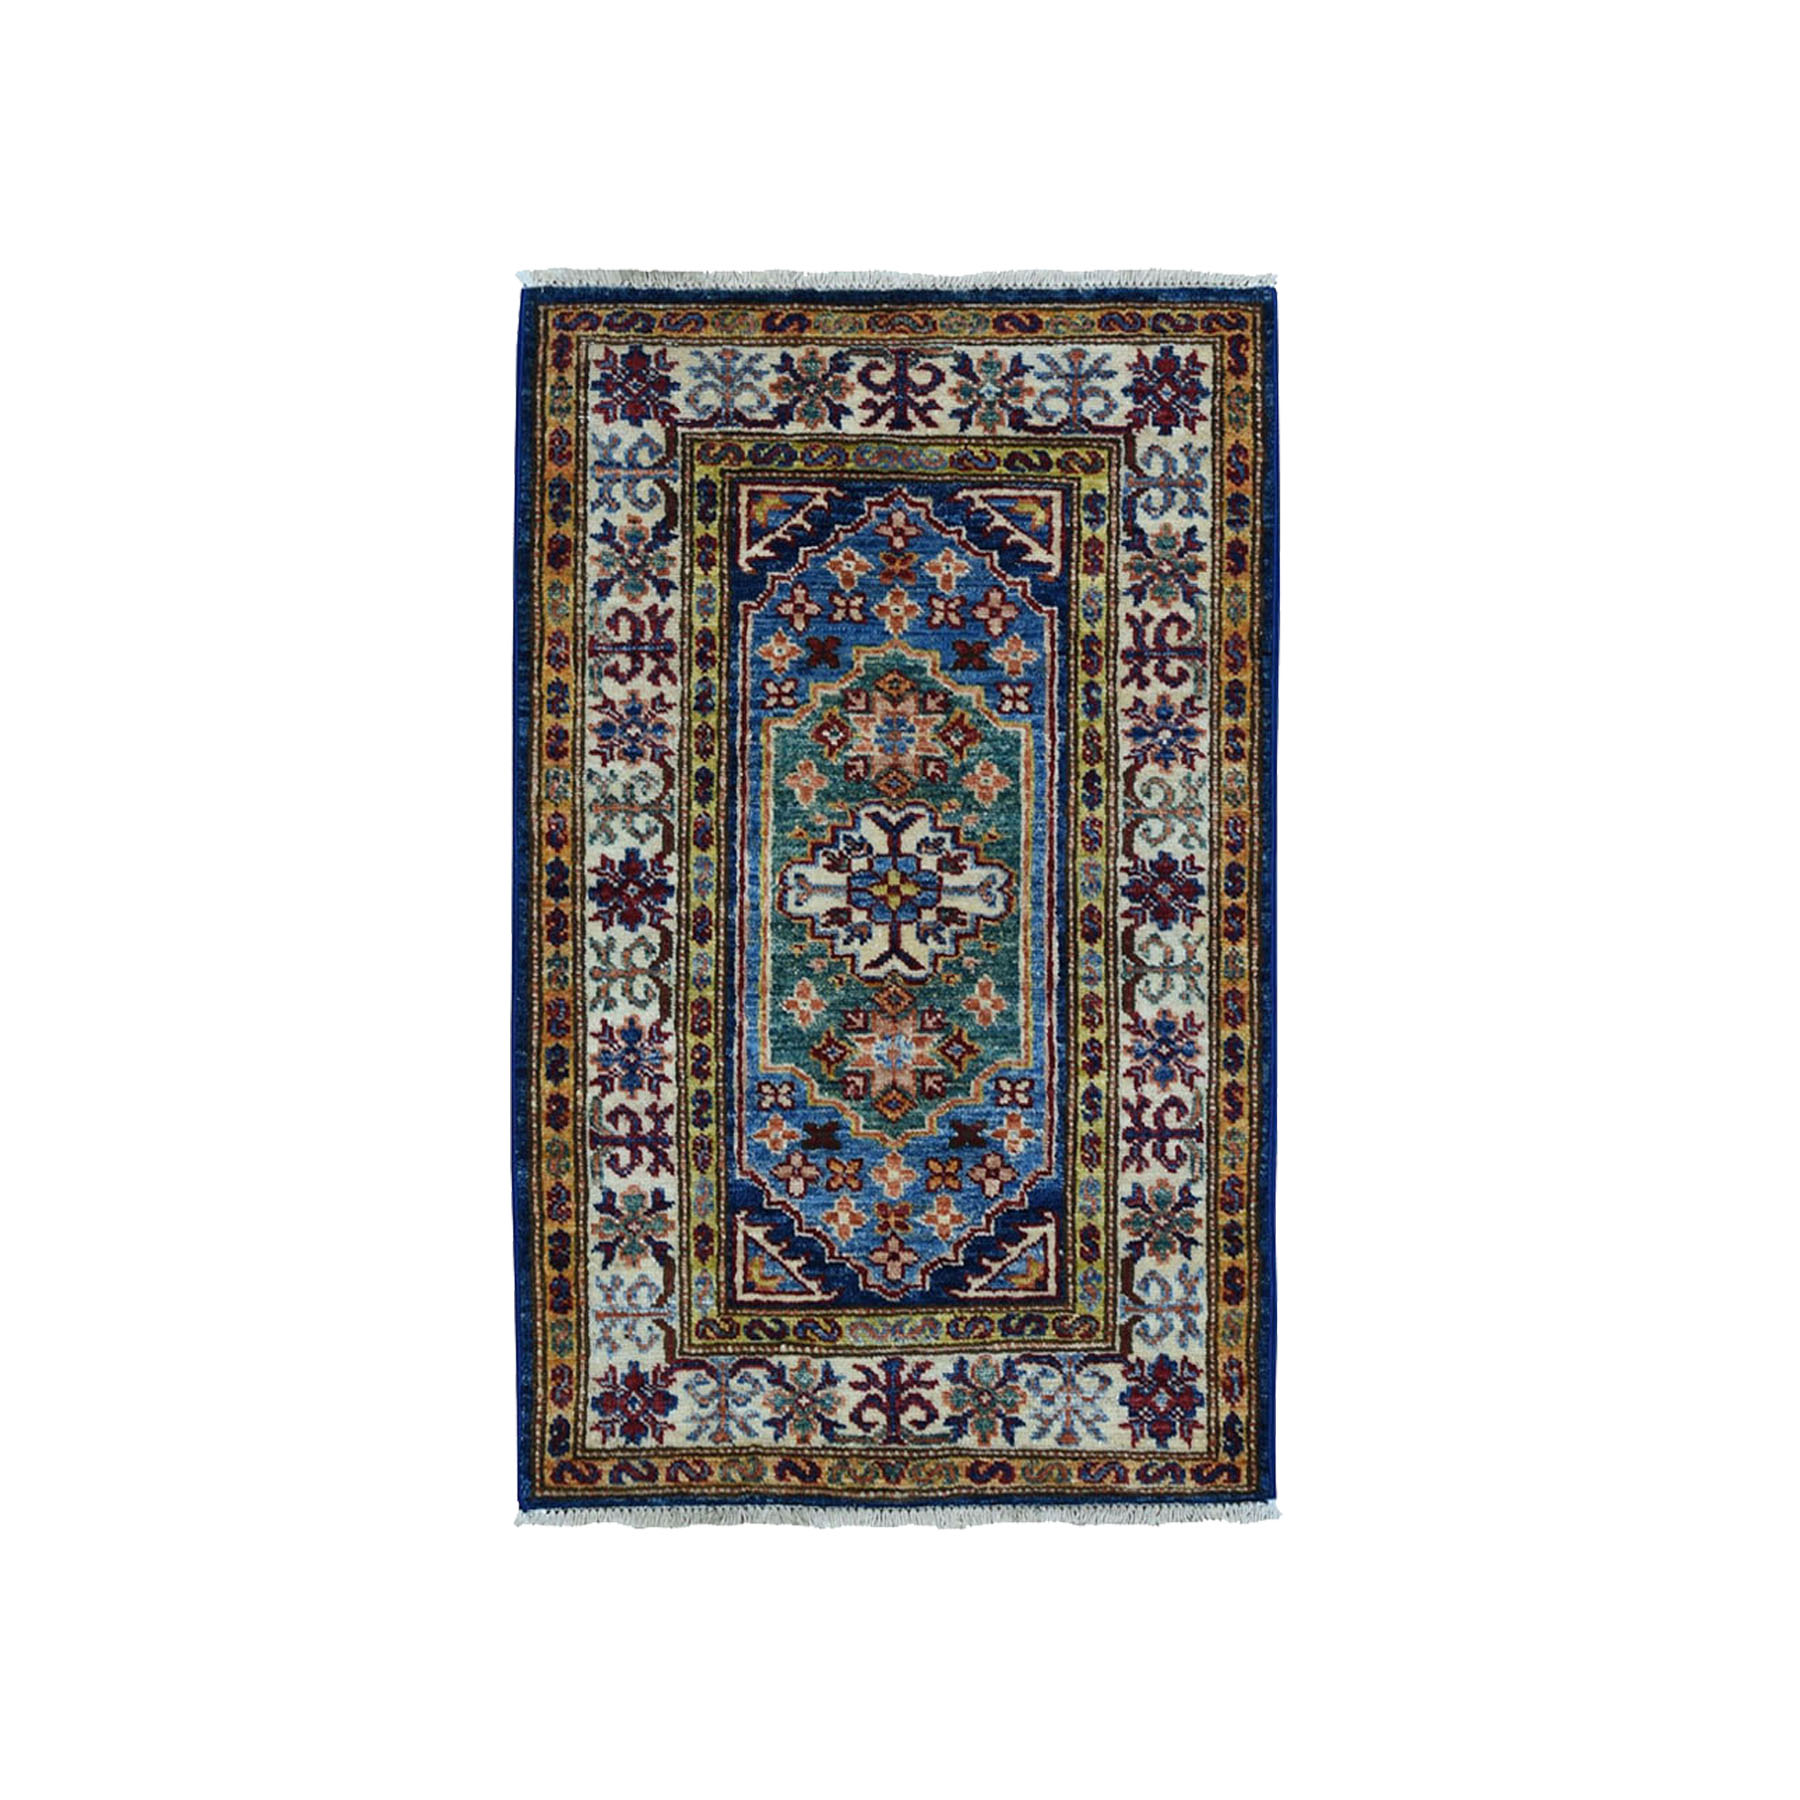 "2'x2'10"" Blue Super Kazak Pure Wool Geometric Design Hand-Knotted Oriental Rug"